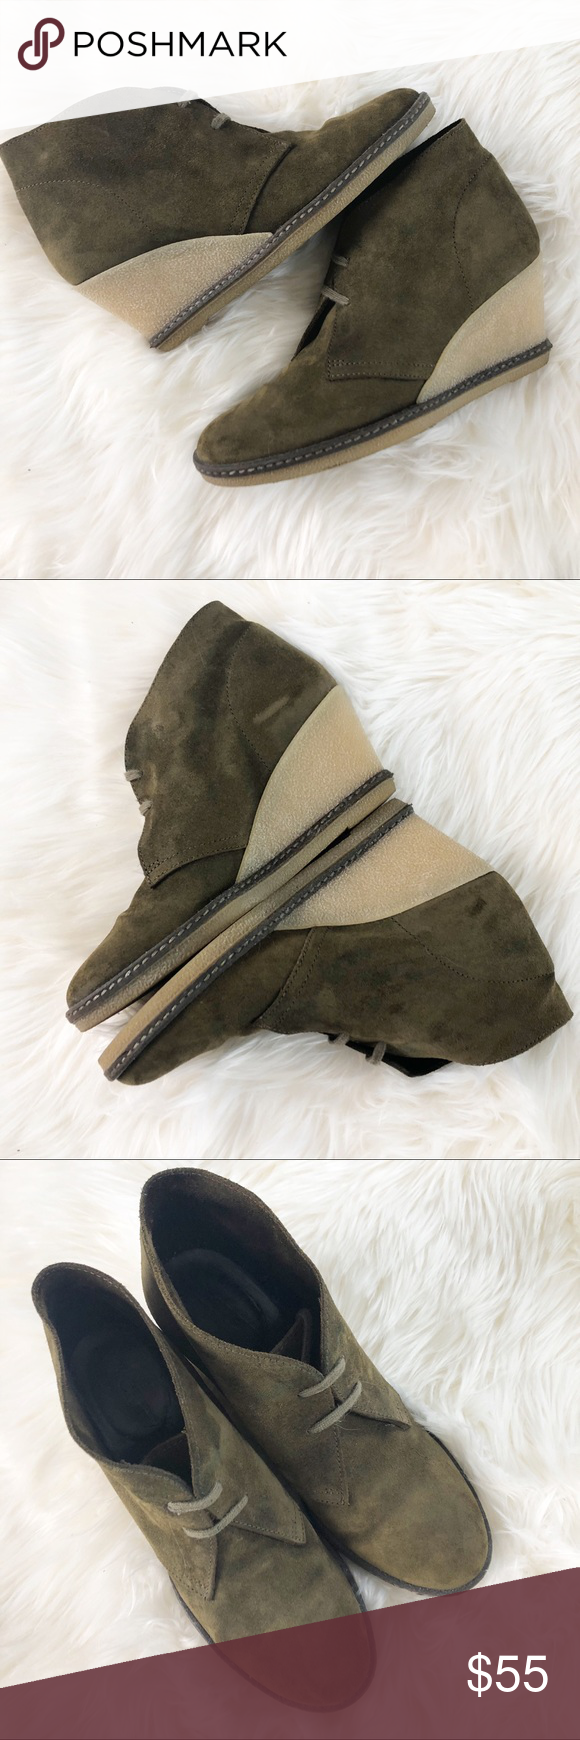 5c9ed7792796 J. Crew olive green suede lace up wedge booties J. Crew MacAlister desert  olive green suede lace up wedge heel booties